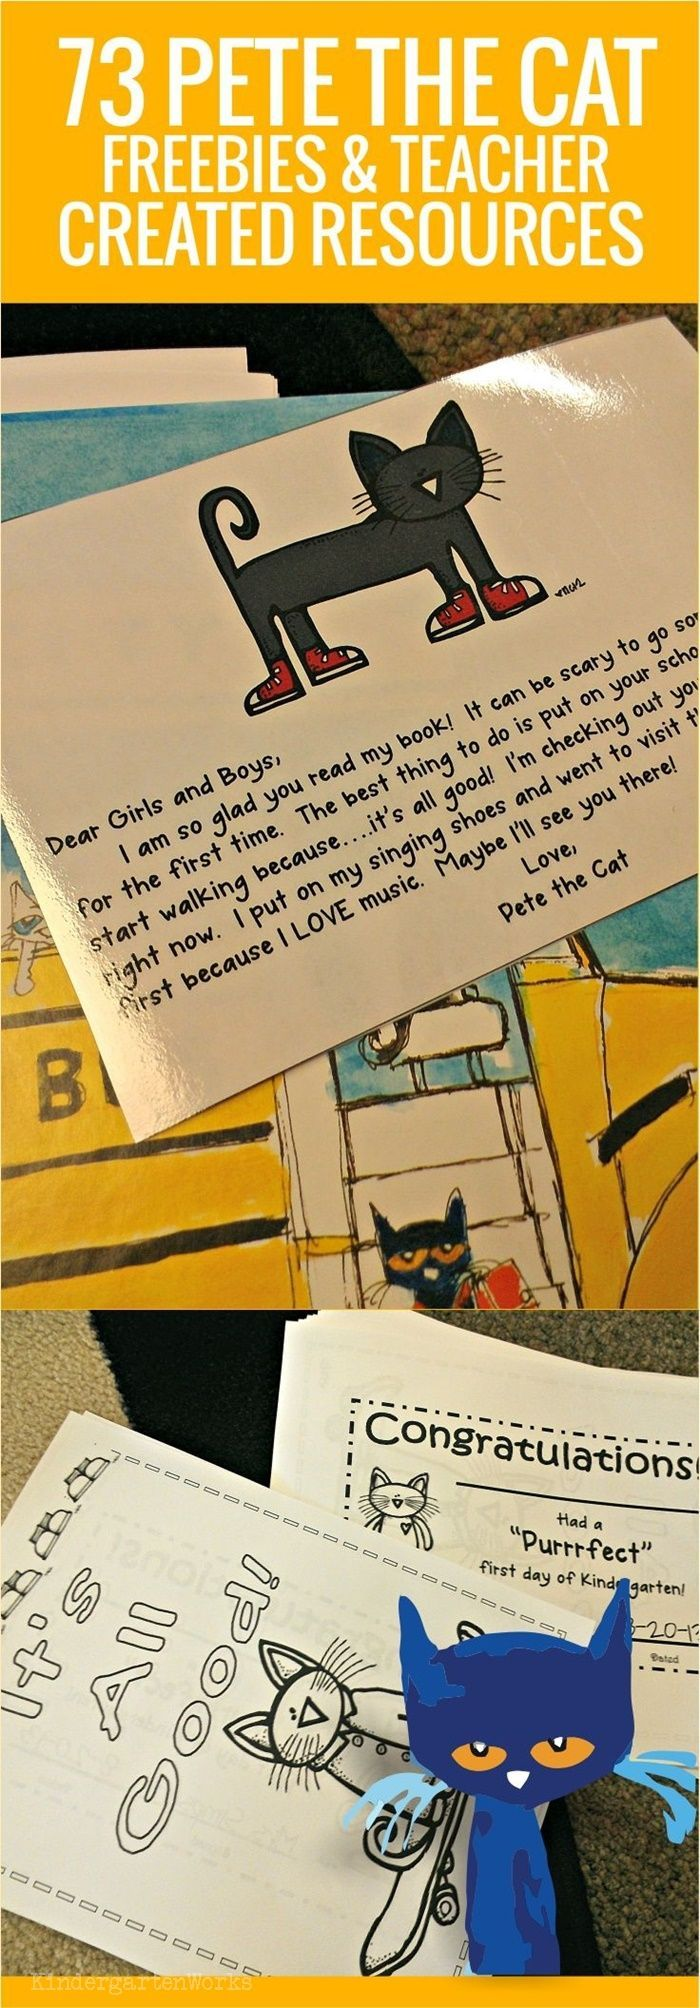 73 Cool Pete the Cat Freebies and Teaching Resources | Kollegen ...